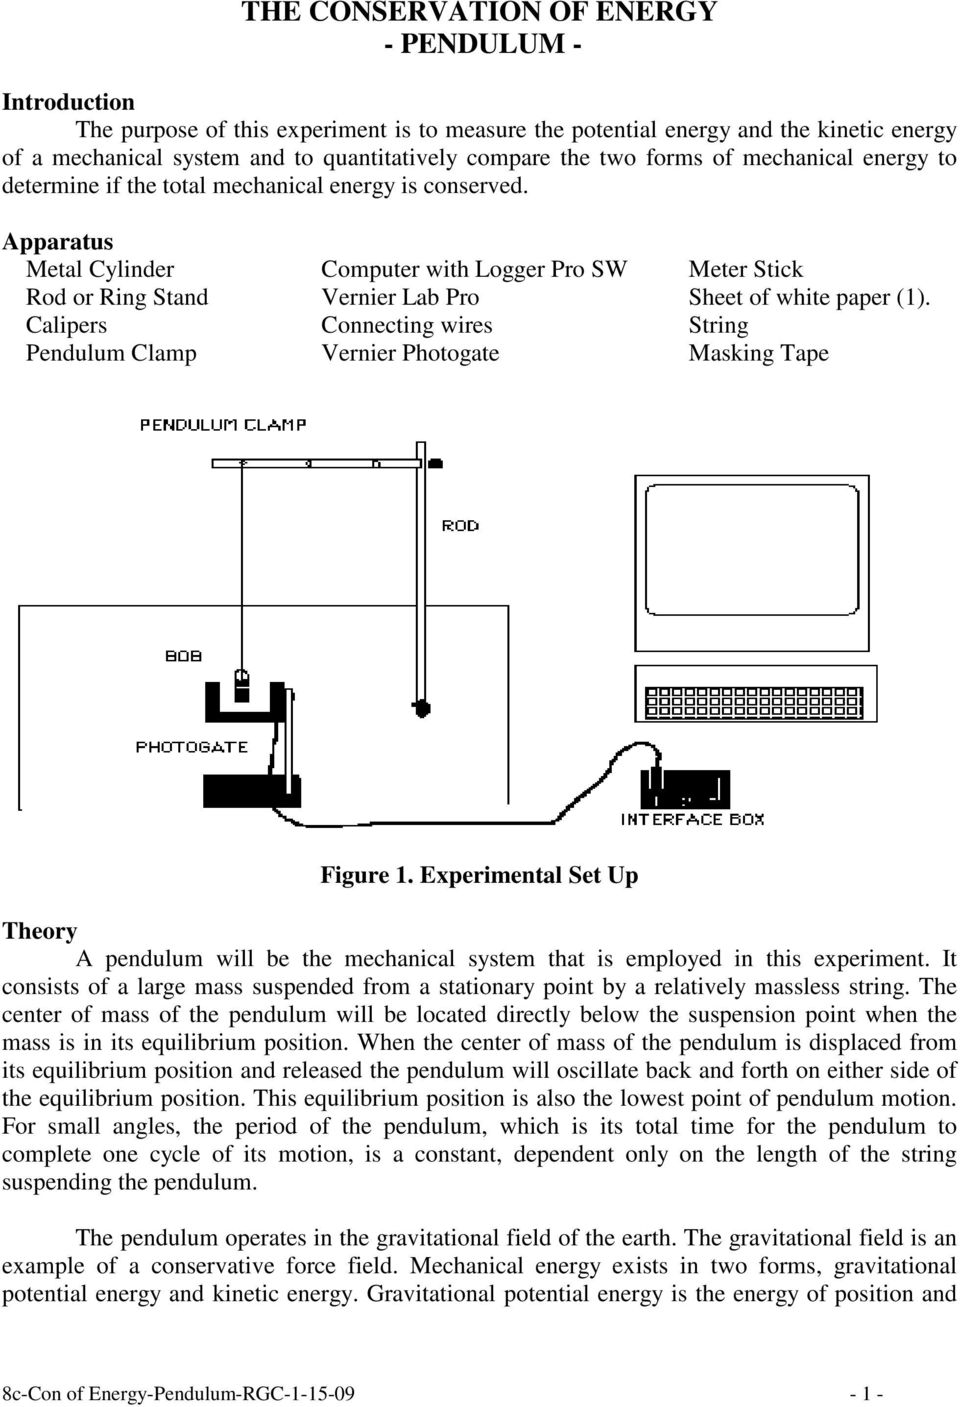 The Conservation Of Energy Pendulum Pdf Ring Pro Wiring Diagram Apparatus Metal Cylinder Computer With Logger Sw Meter Stick Rod Or Stand Vernier Lab